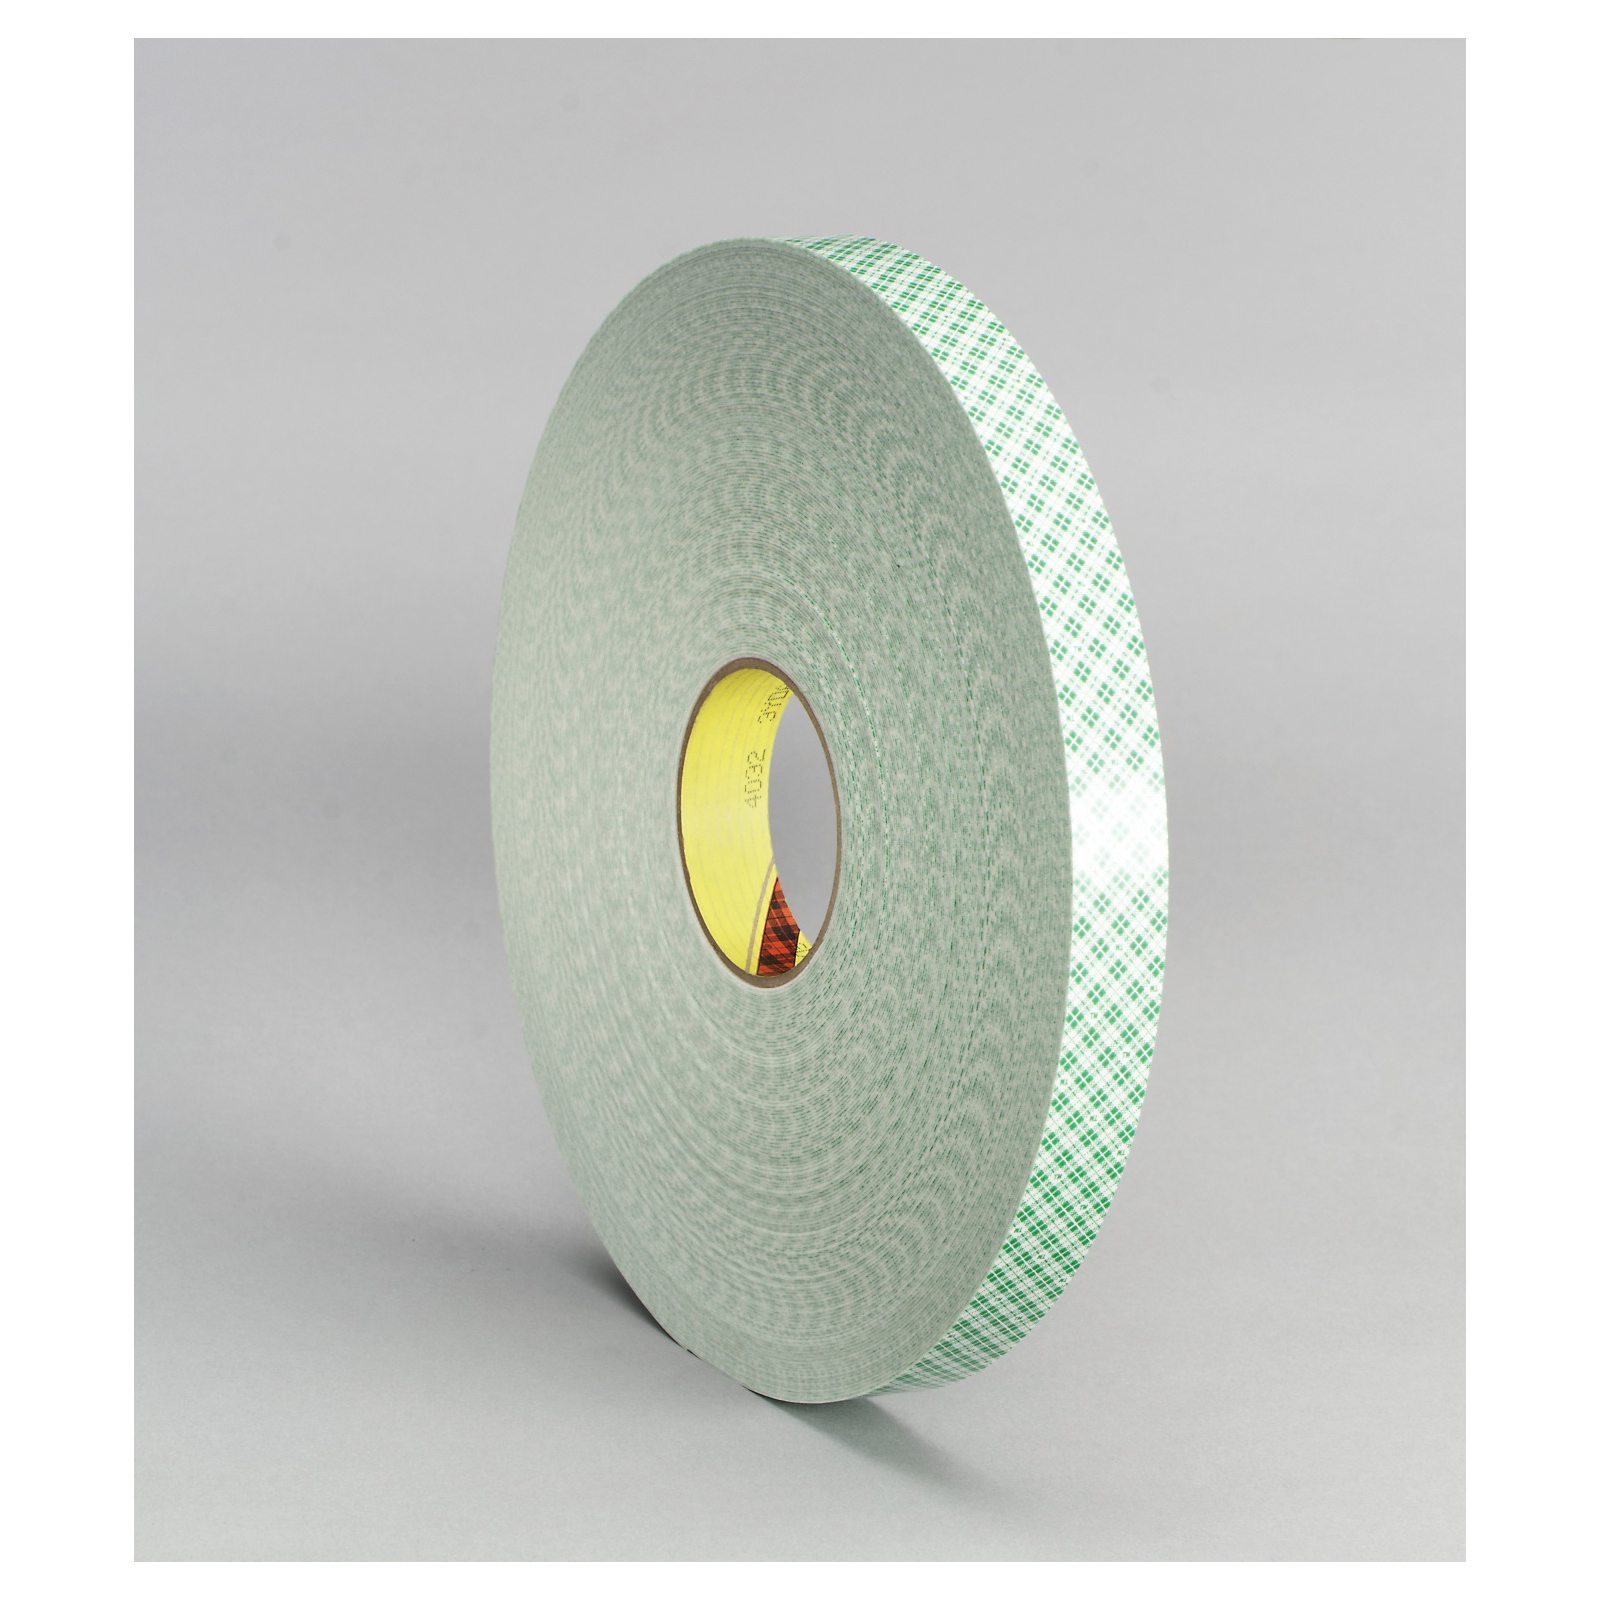 3M™ 021200-03357 Double Coated Tape, 72 yd L x 1/4 in W, 31 mil THK, Acrylic Adhesive, Urethane Foam Backing, Off-White